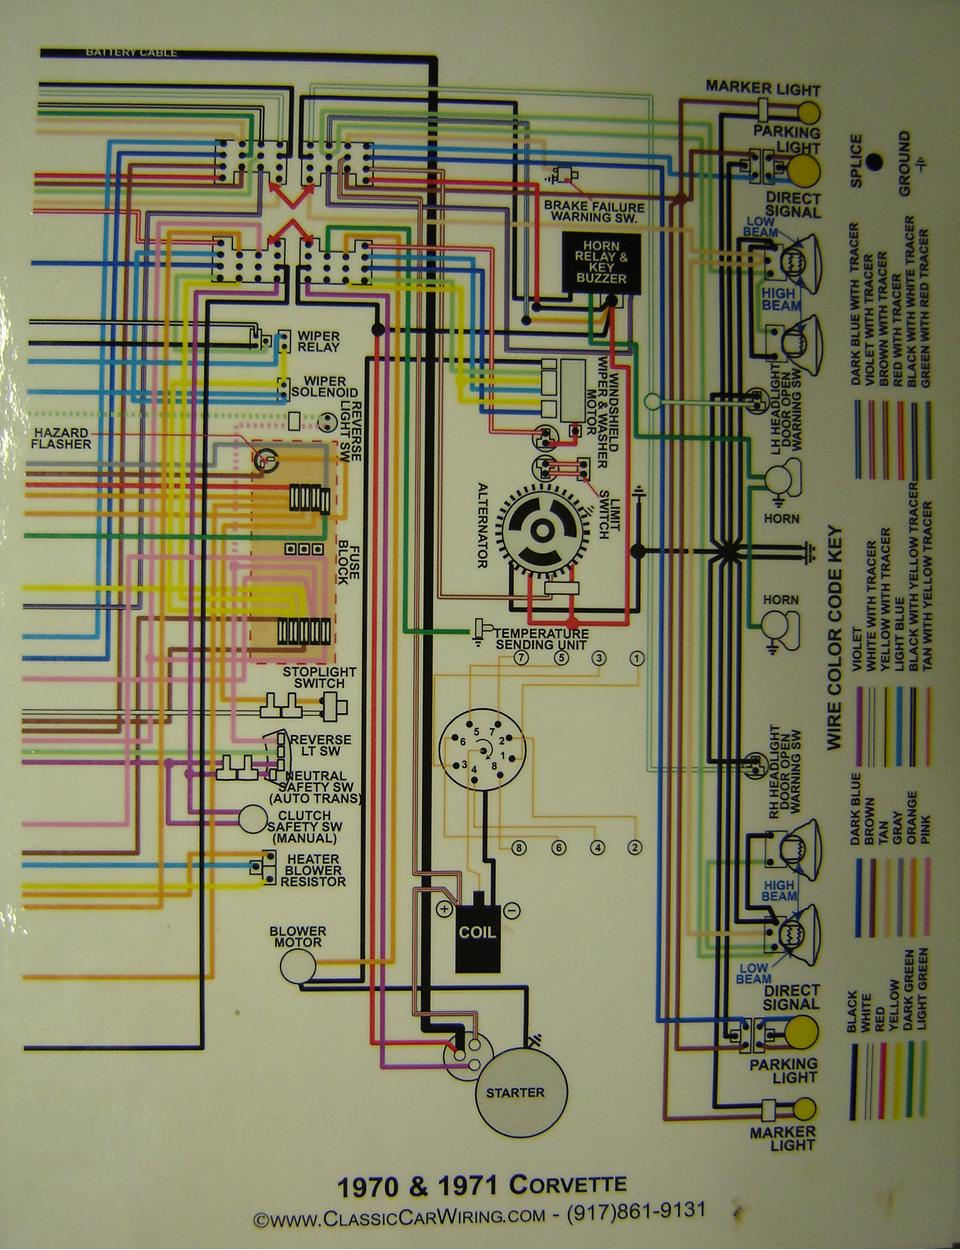 1970 71 corvette color wiring diagram B chevy diagrams Headlight Relay Harness Schematic at gsmx.co